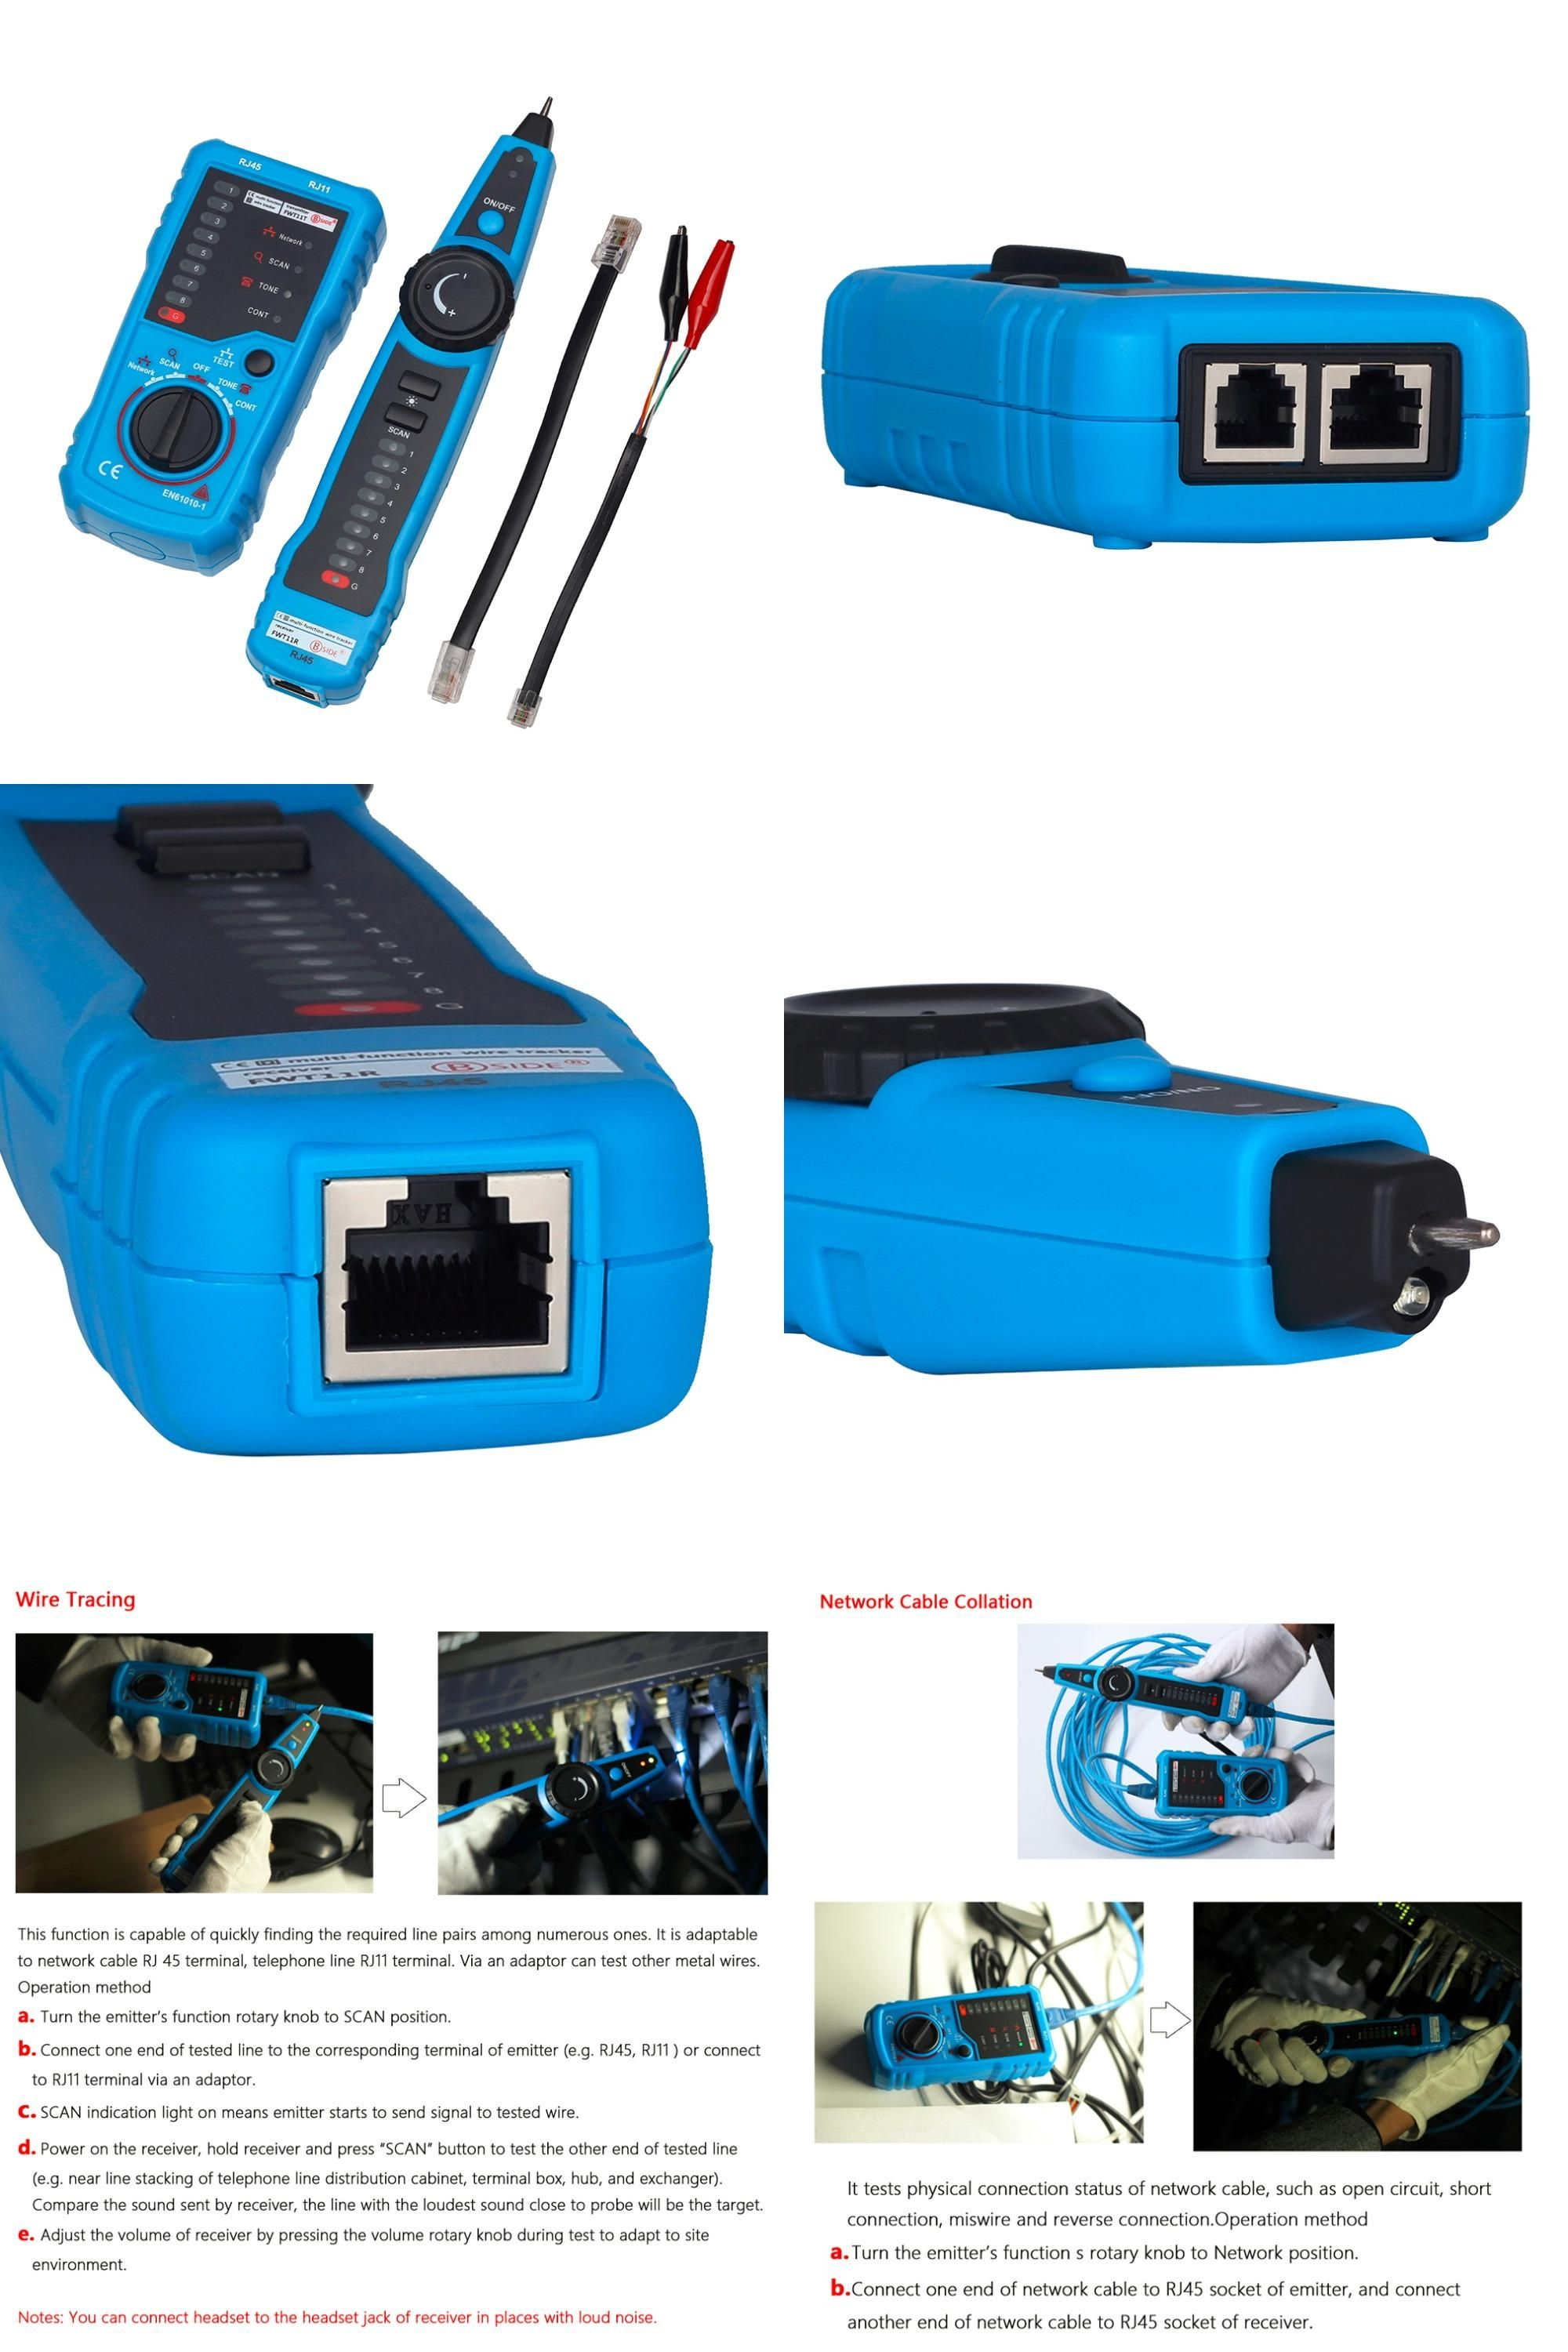 Visit to Buy] High Quality RJ11 RJ45 Cat5 Cat6 Telephone Wire ...